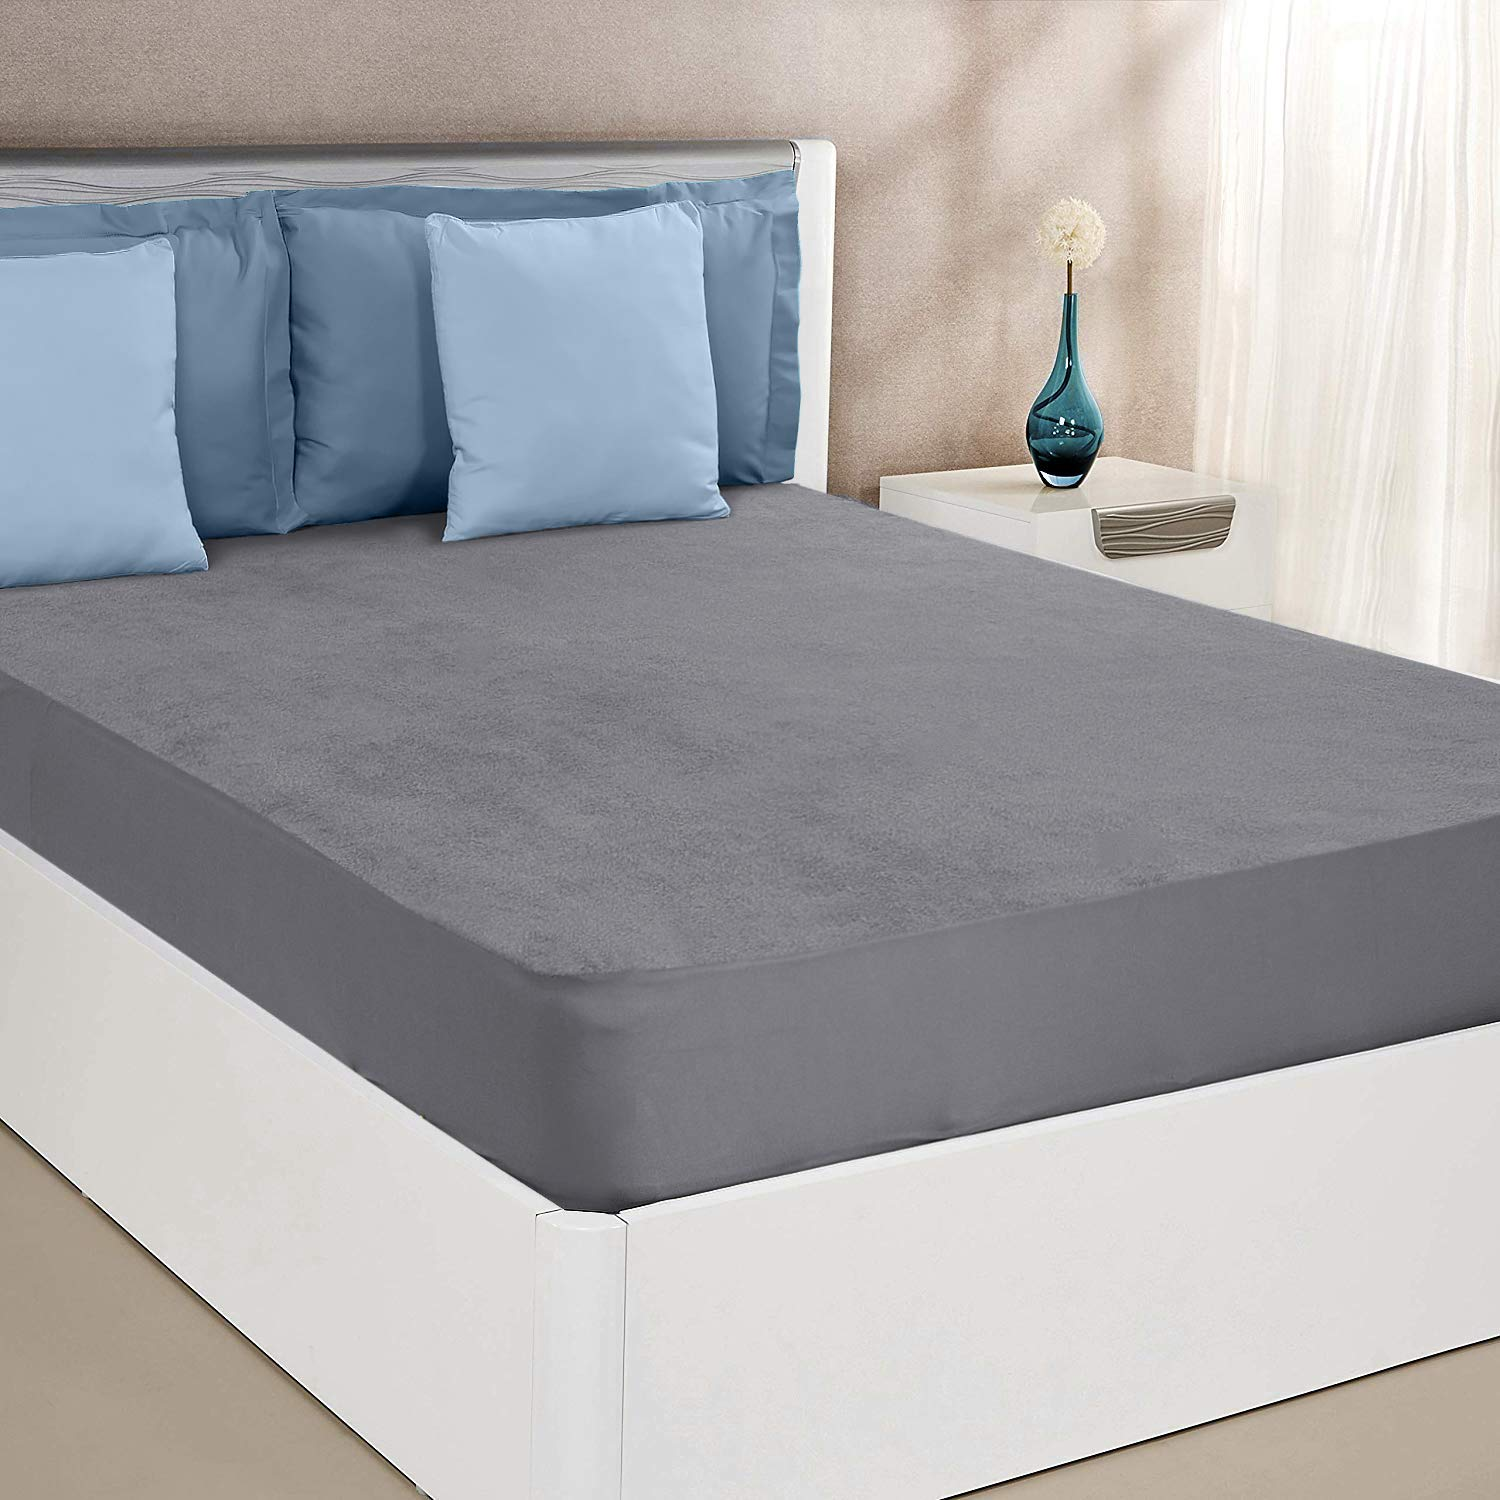 Amazon Brand - Solimo Water Resistant Cotton Mattress Protector 72